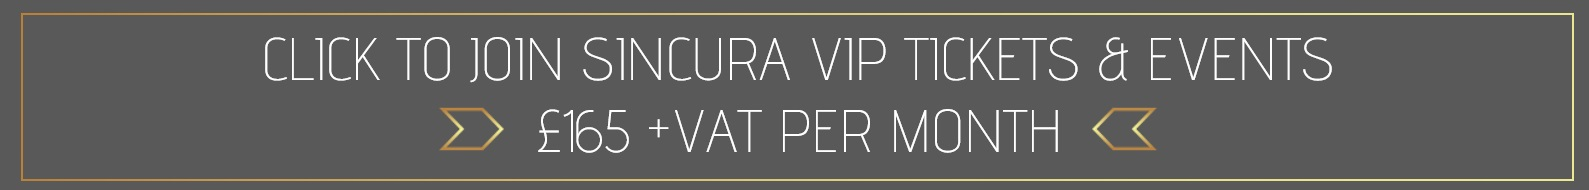 join sincura vip tickets and events membership monmthly